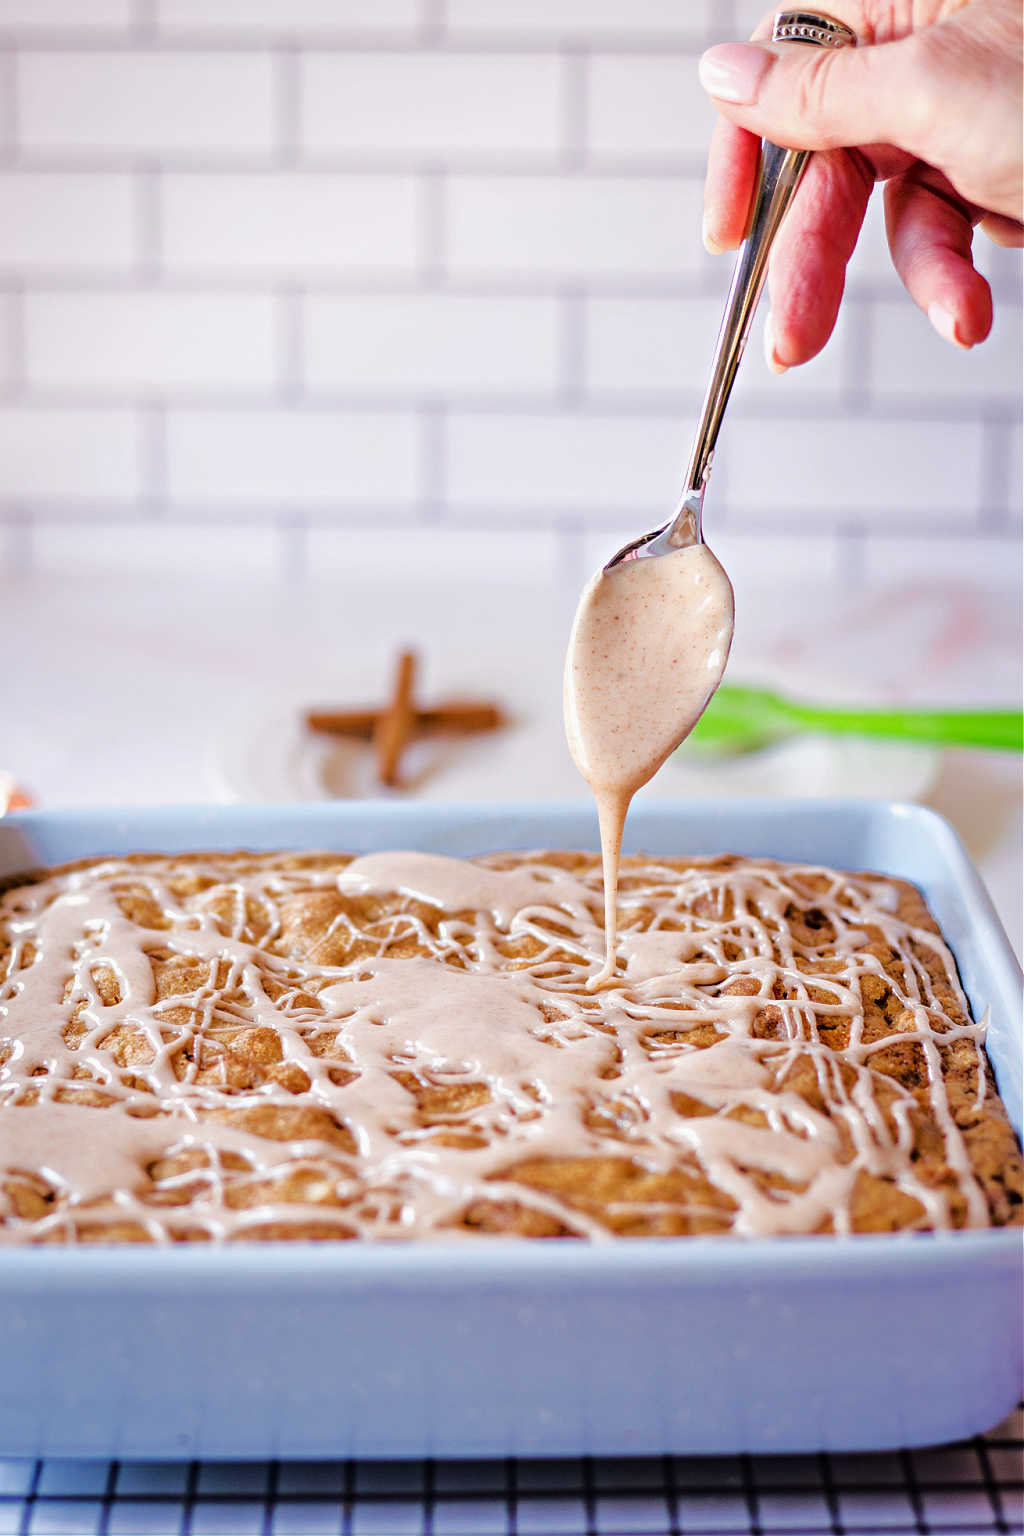 a spoon drizzling cinnamon glaze on a warm apple walnut snack cake.